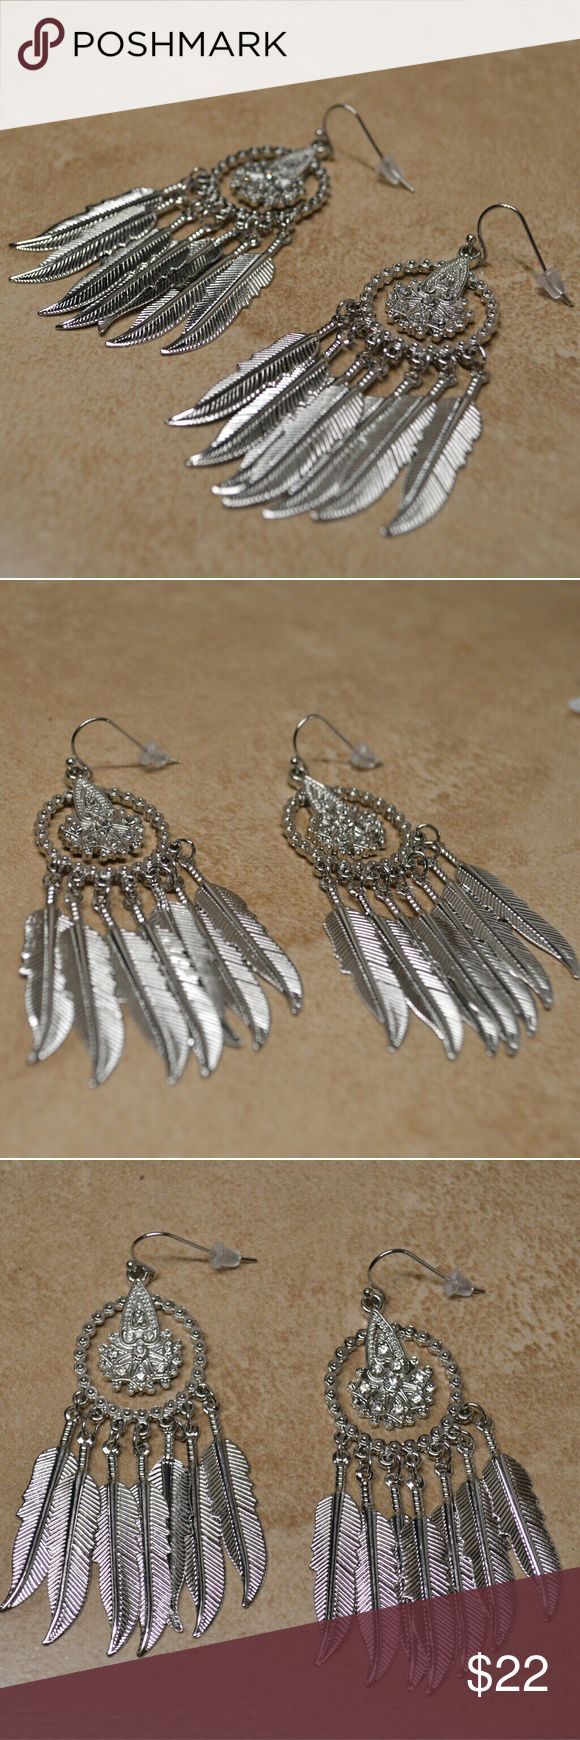 Stunning Brand New Silver Dreamcatcher Earrings These beauties are a great find! Shiny silver with dazzling jewels add sparkle to any outfit. Dangly feathers at the bottom of each dreamcatcher.  These are brand new and perfect!     Tags feathers feather boho bohemian hippy earrings dangle dangly native American Indian web silver round hippy classy girly hook earrings Boutique Jewelry Earrings